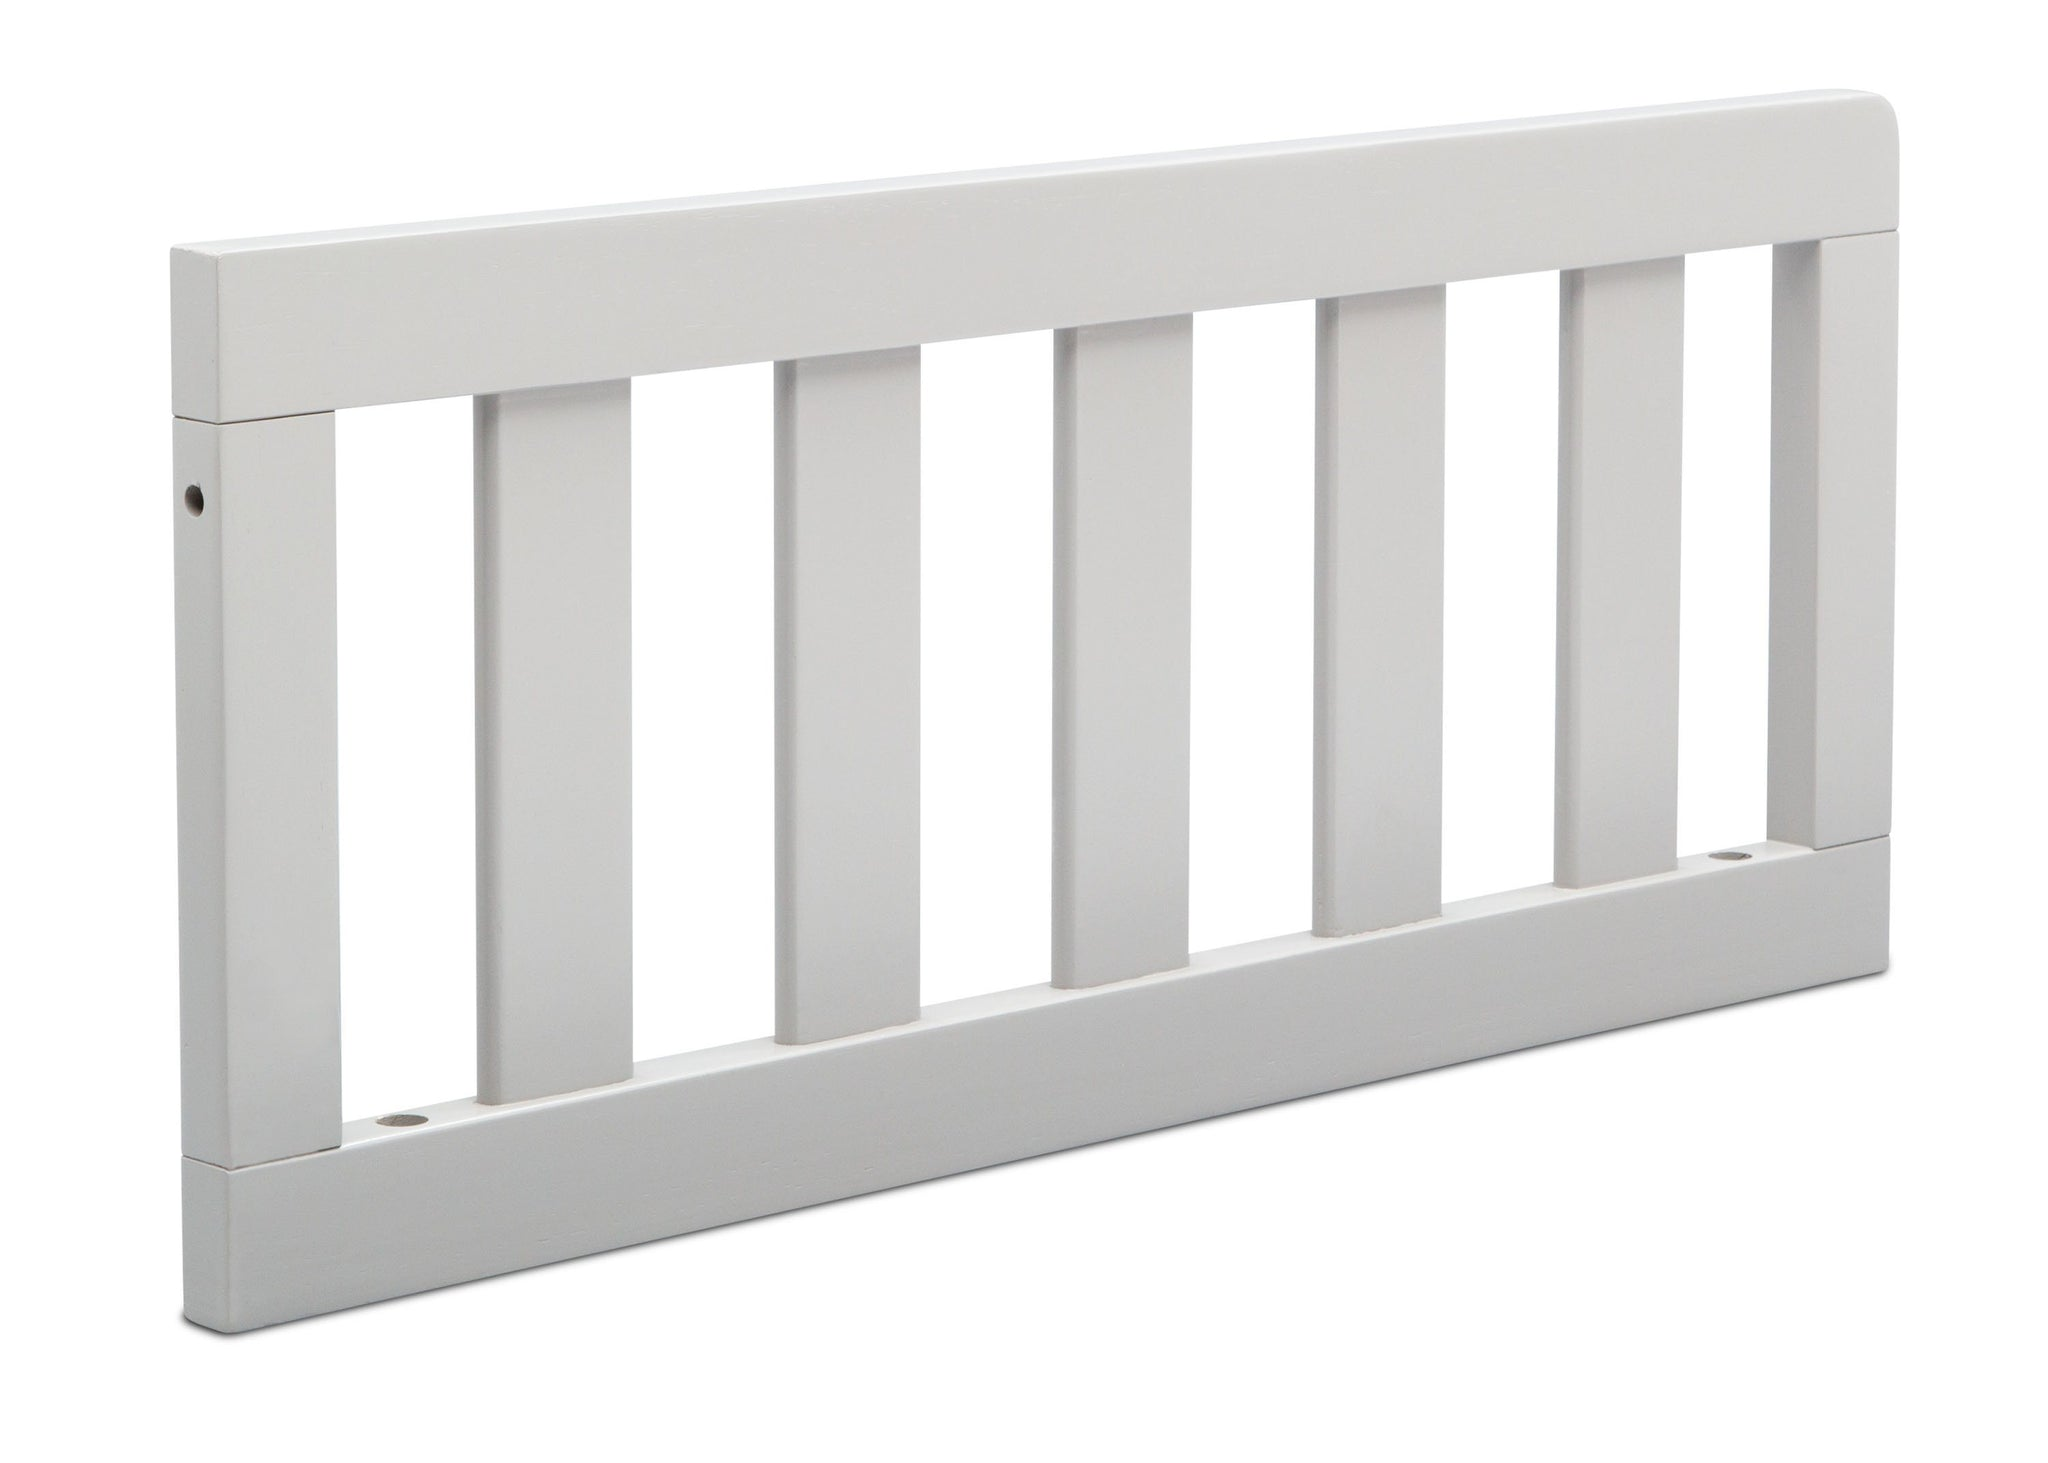 Serta Daybed/Toddler Guardrail Kit (707725) Bianca (130) Angle b4b